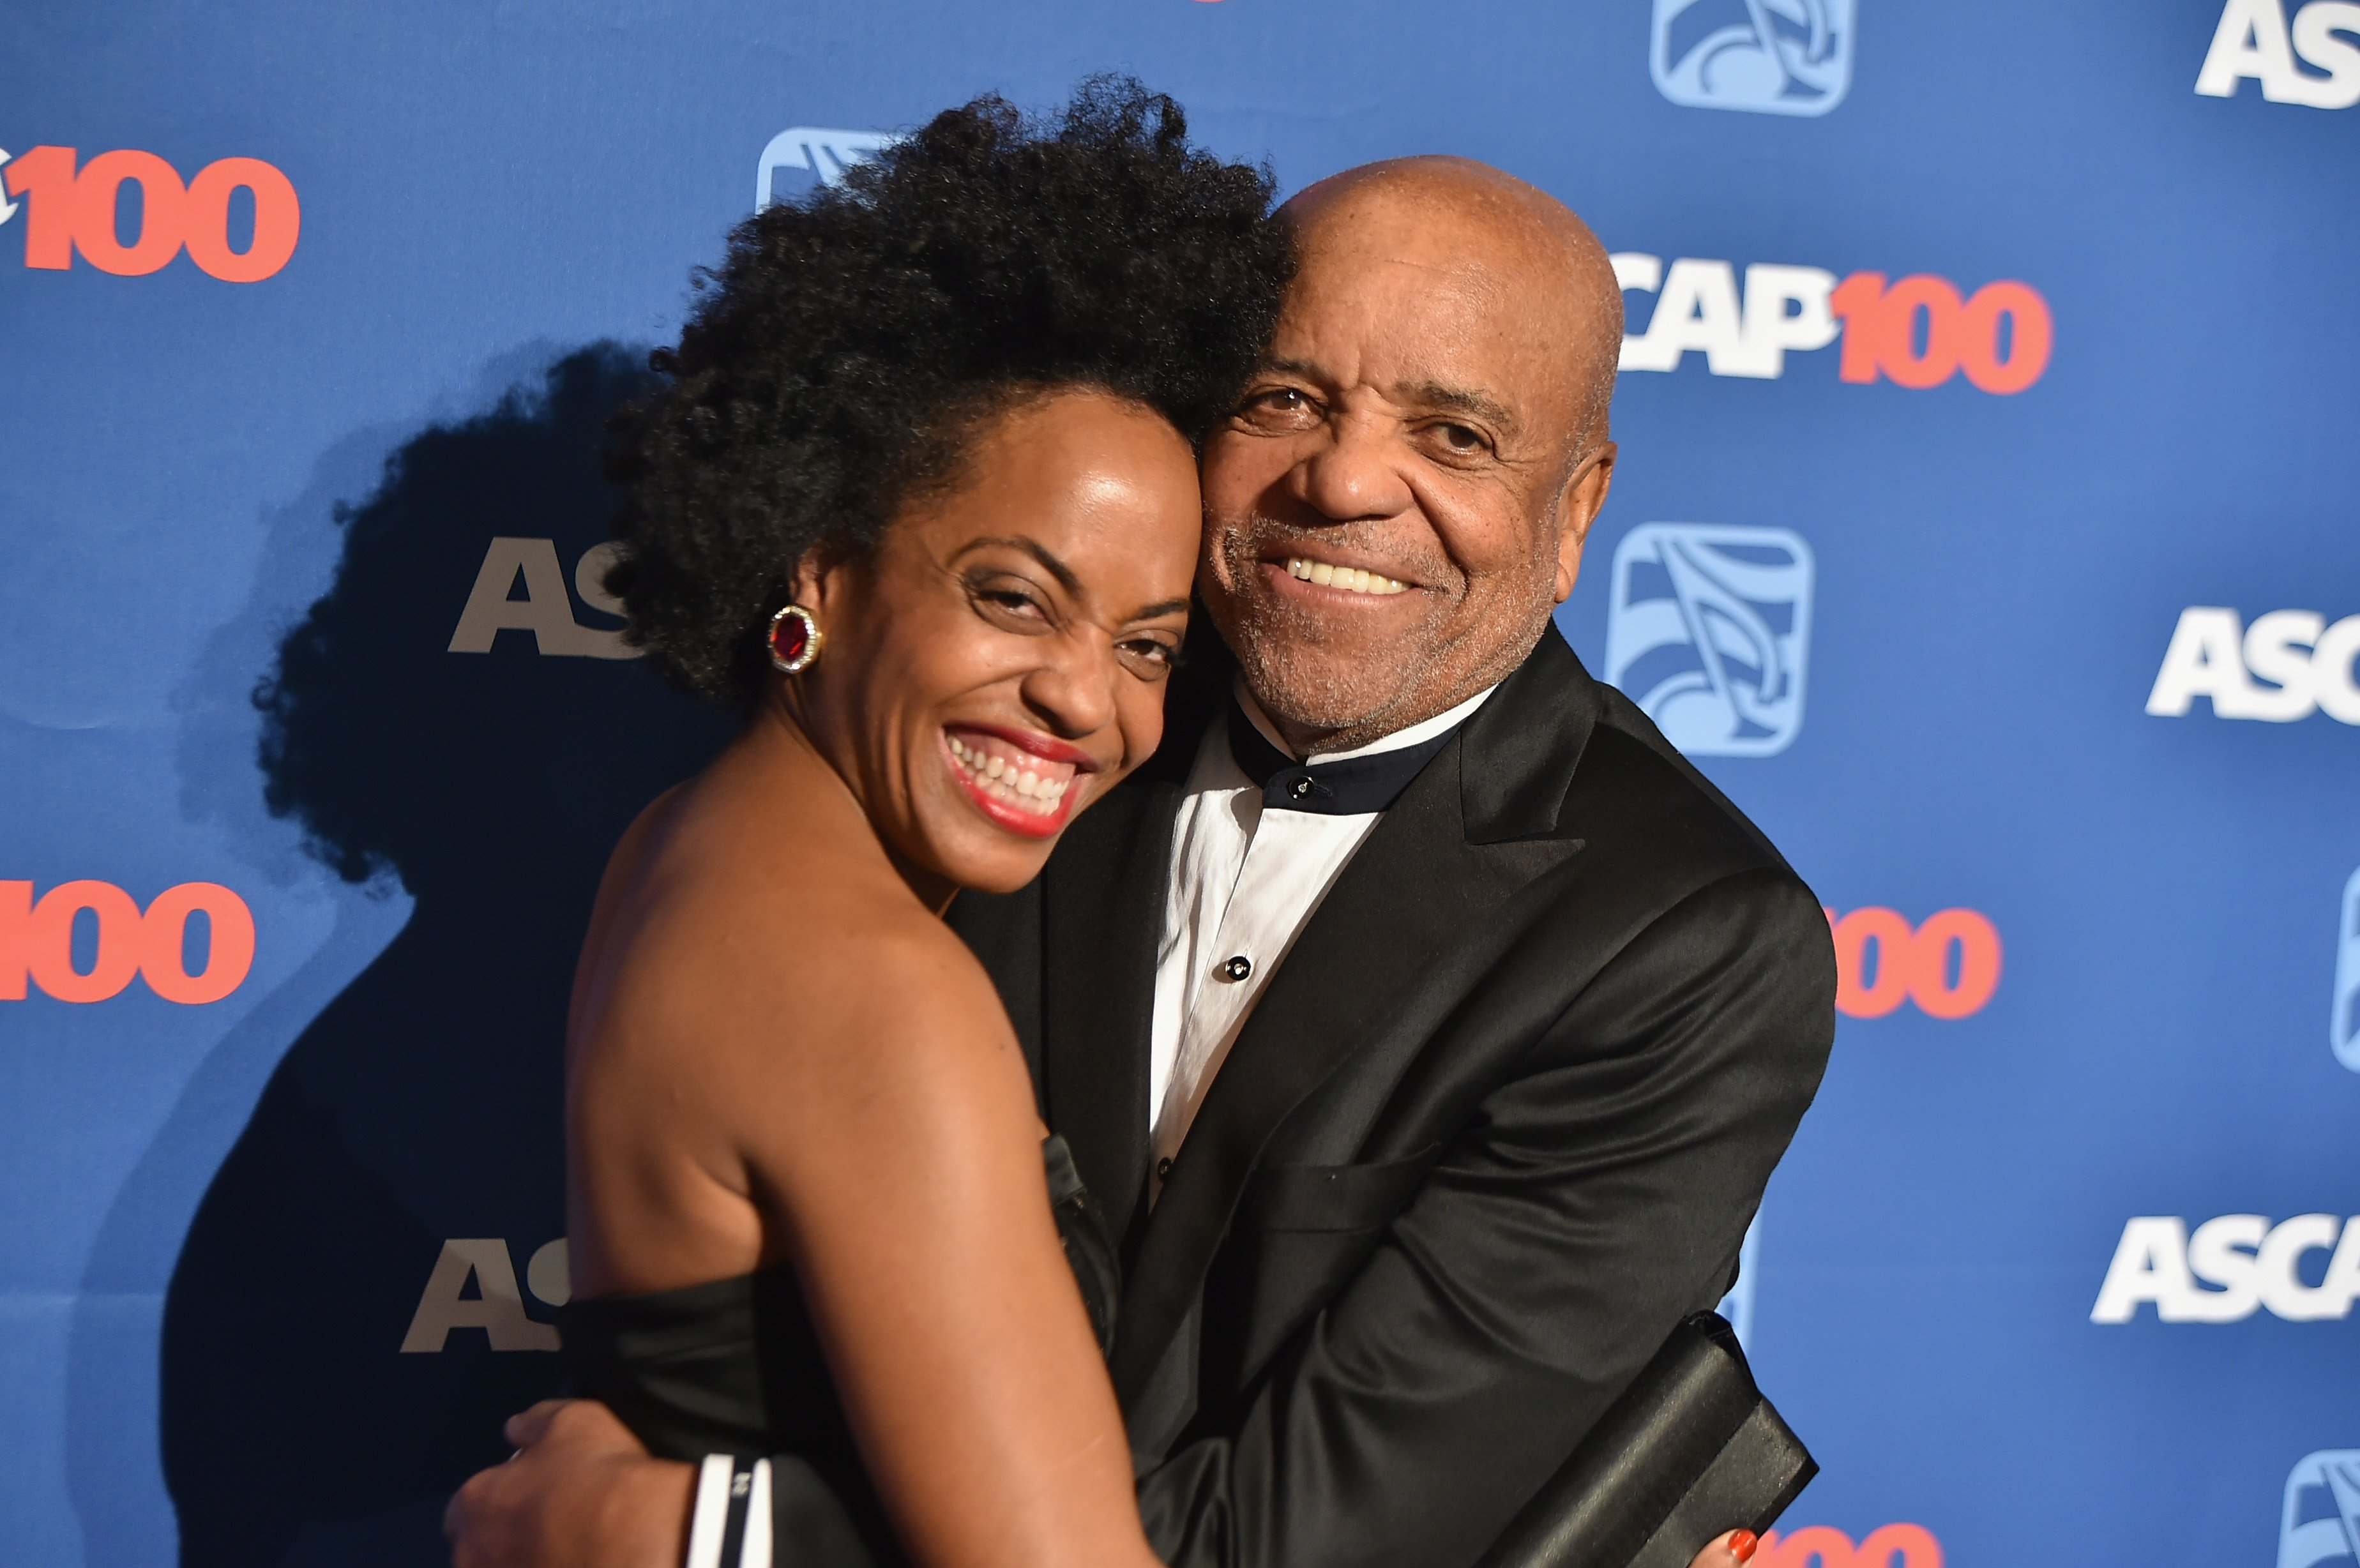 Rhonda Ross Kendrick and Berry Gordy attend the ASCAP Centennial Awards at Waldorf Astoria Hotel on November 17, 2014. | Photo: GettyImages